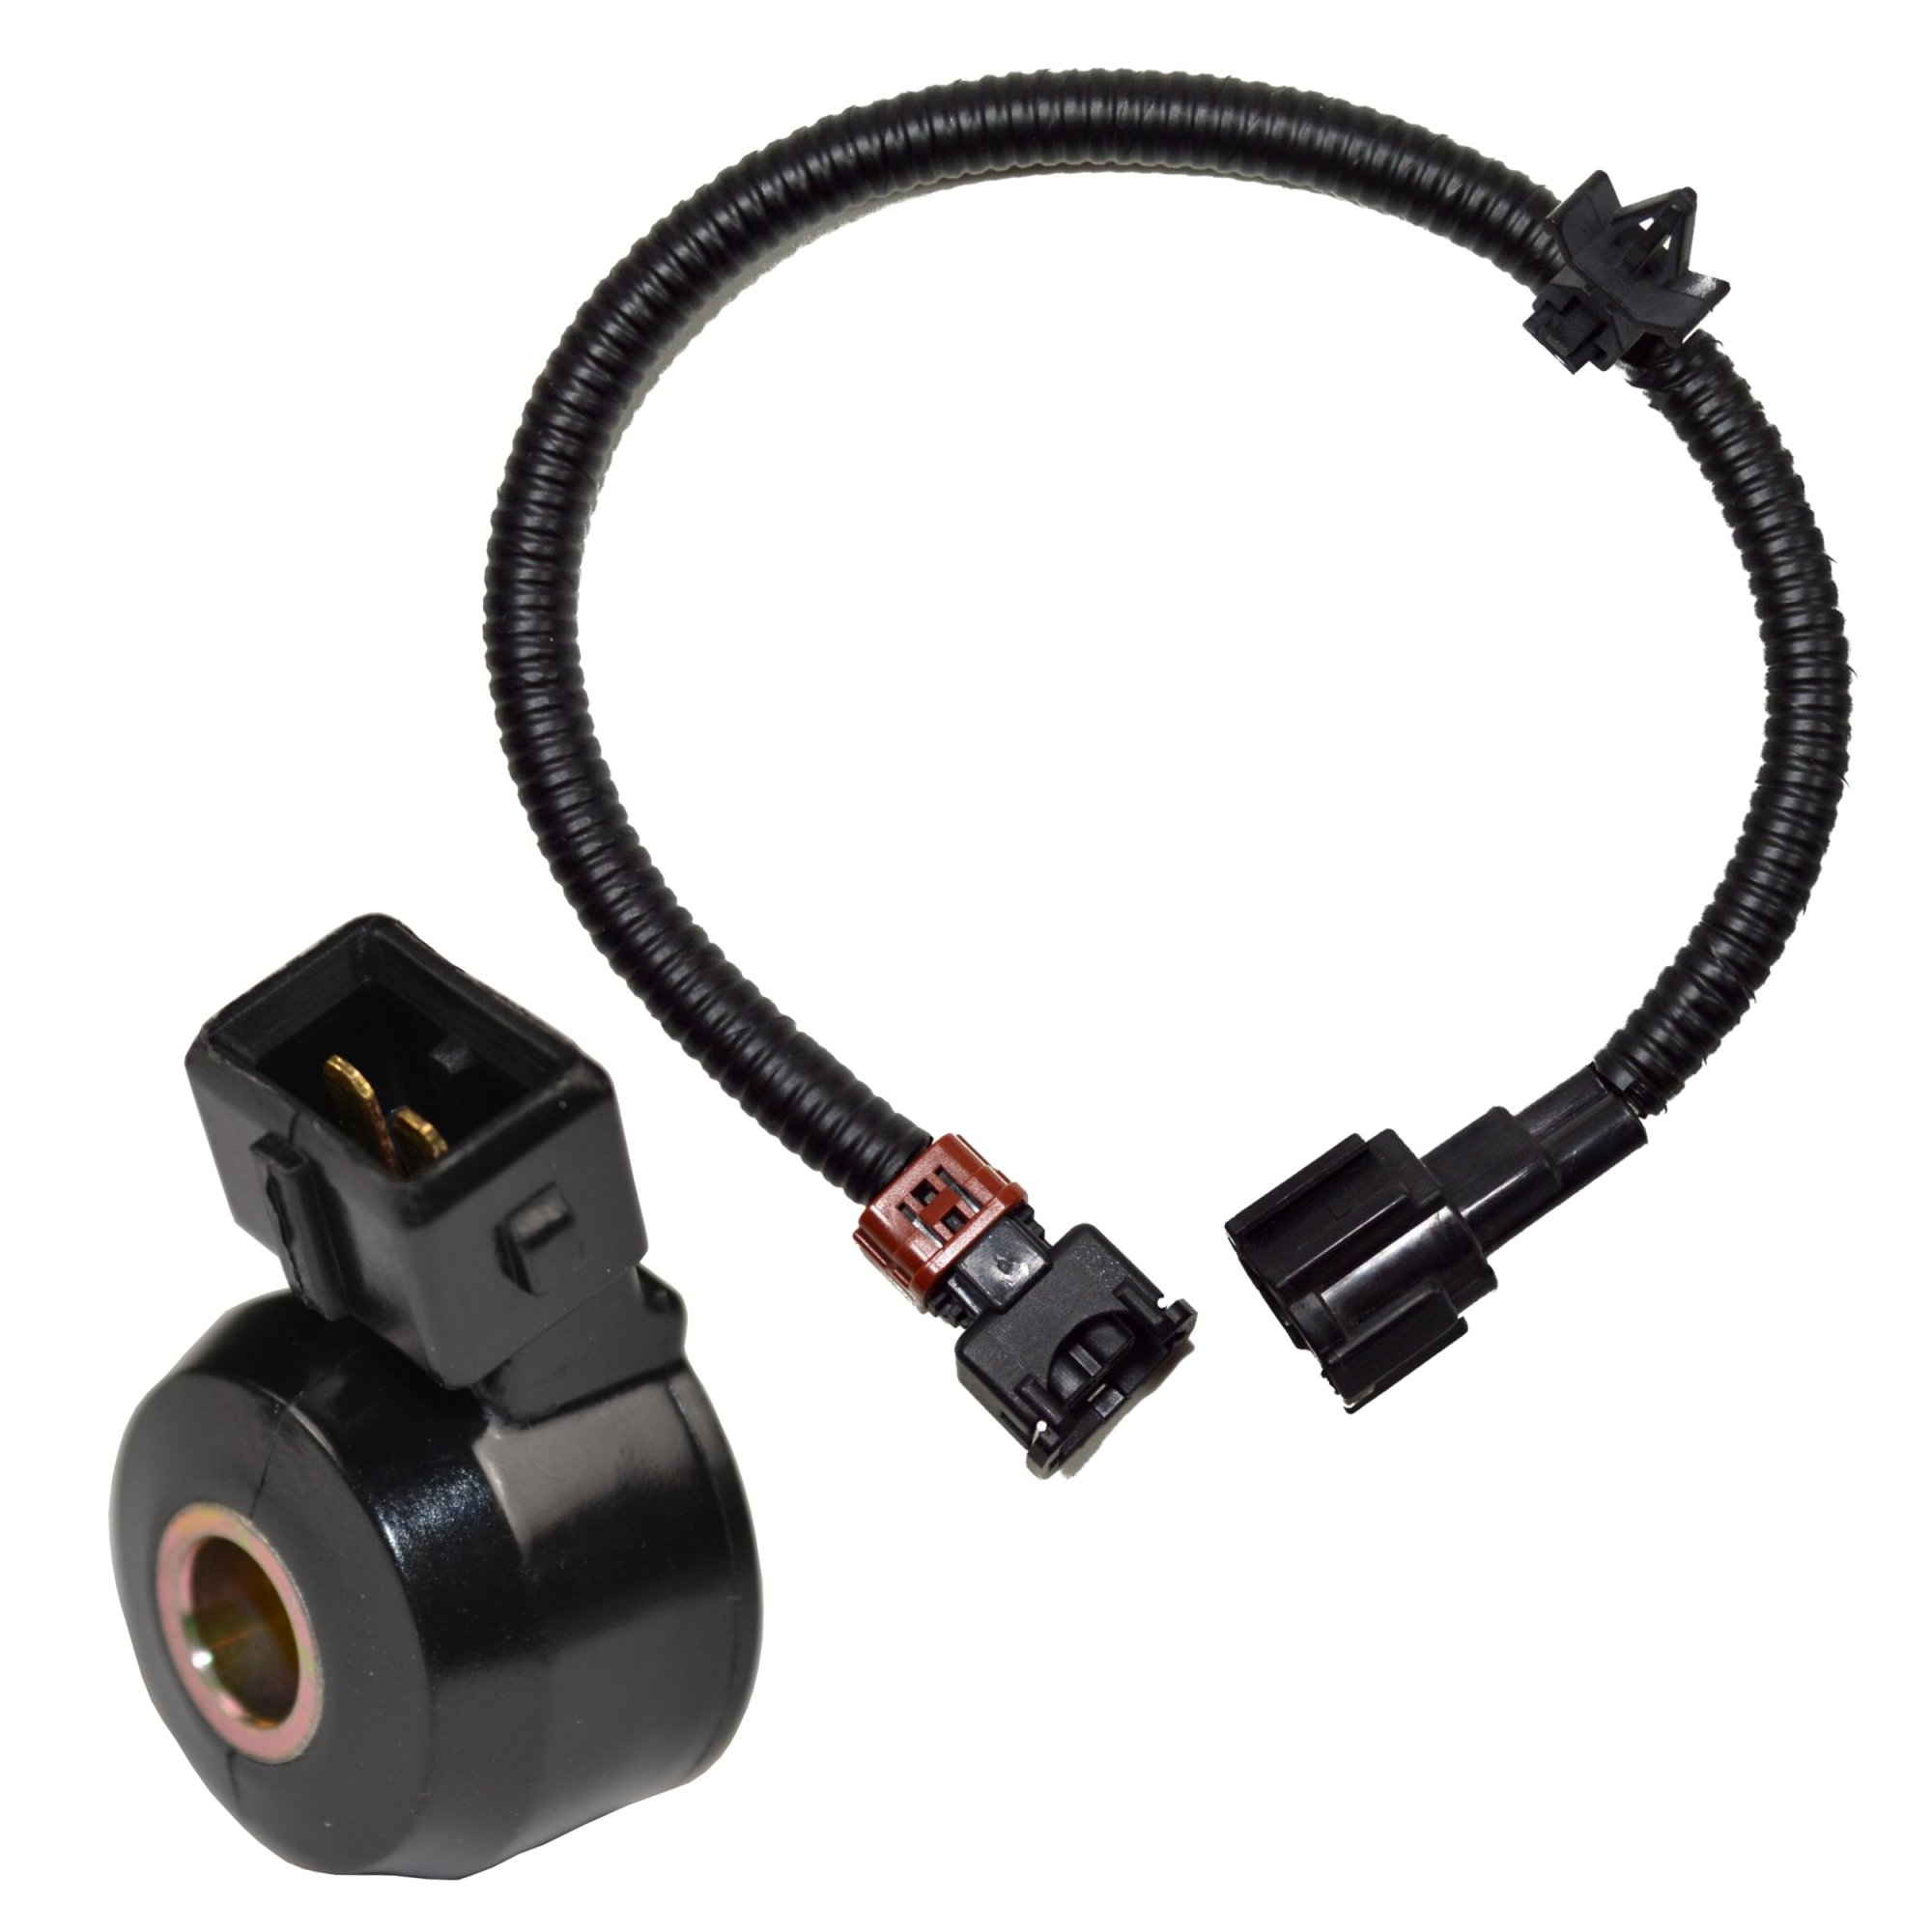 hight resolution of get quotations hqrp knock sensor w wiring harness for nissan maxima 92 93 94 95 96 97